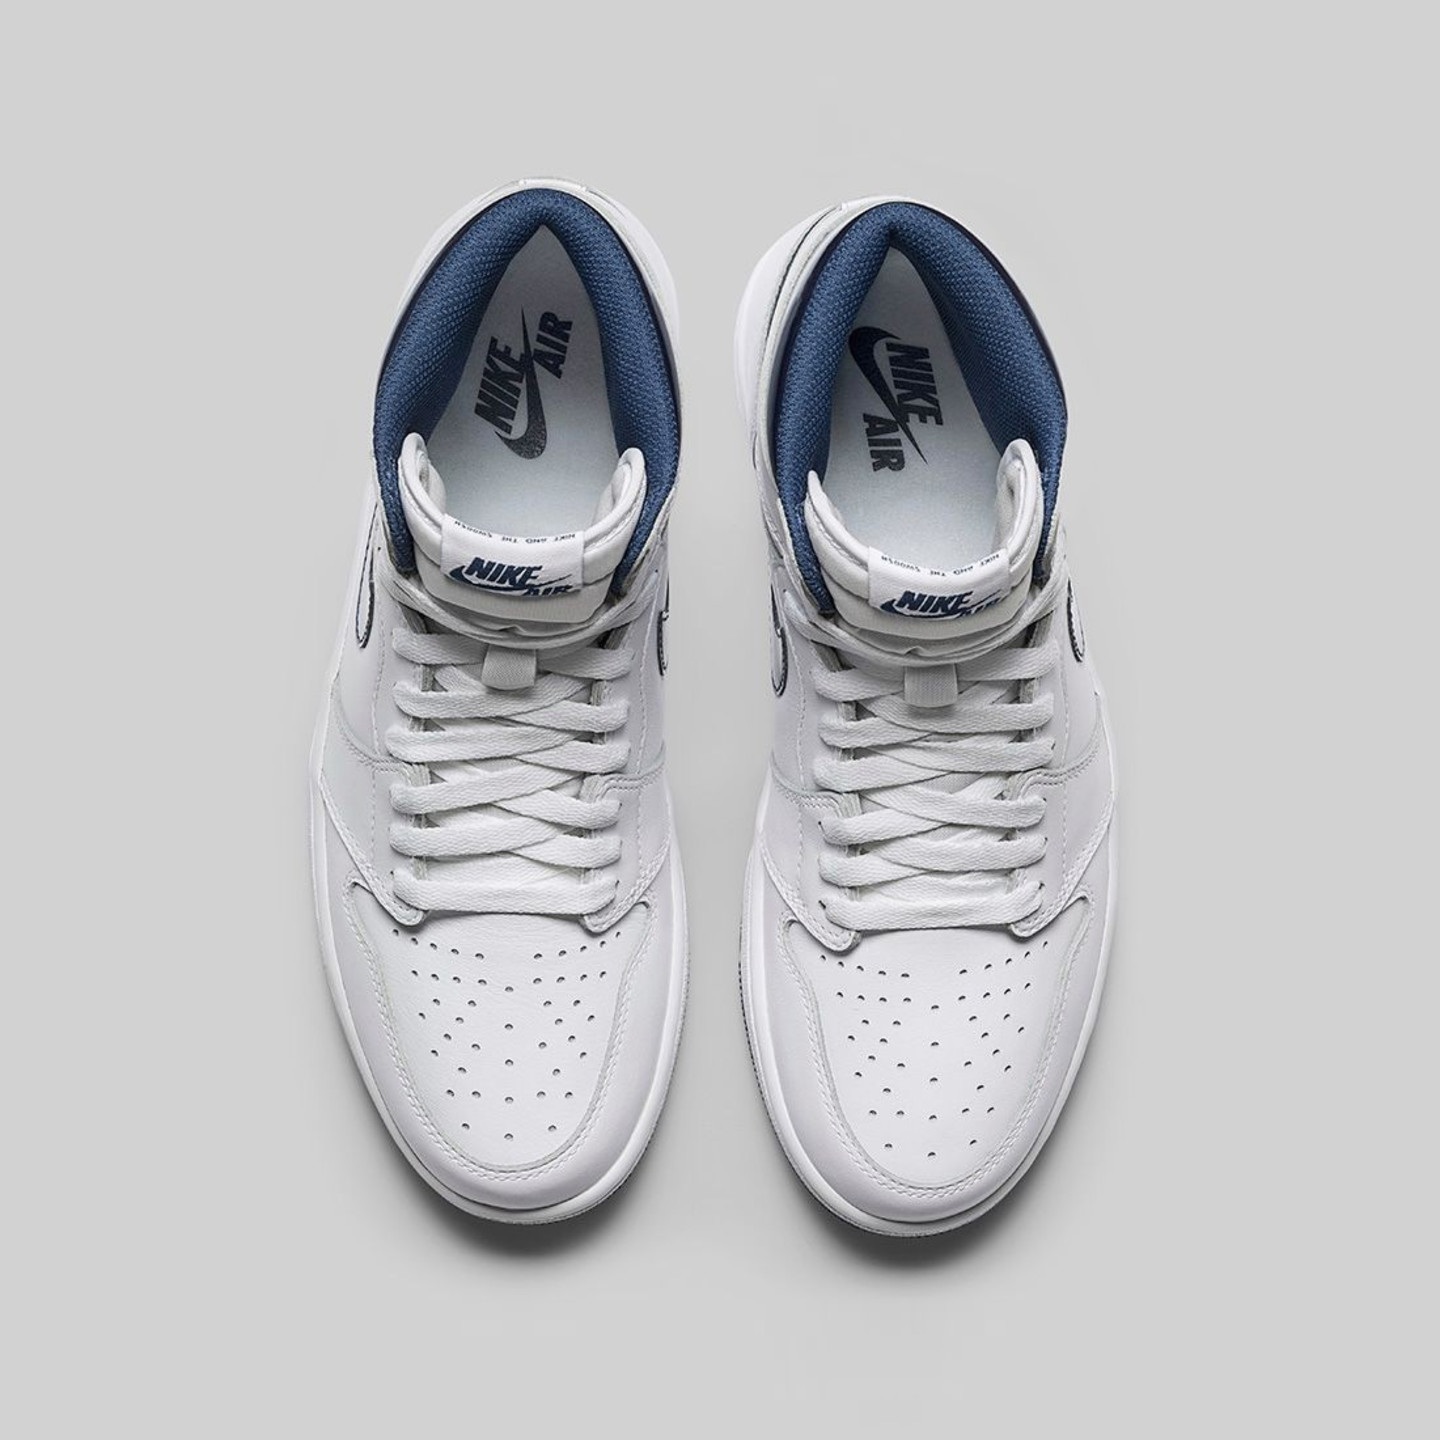 Jordan Air Jordan 1 Retro High OG 'Metallic Navy' White / Midnight Navy 555088-106-46